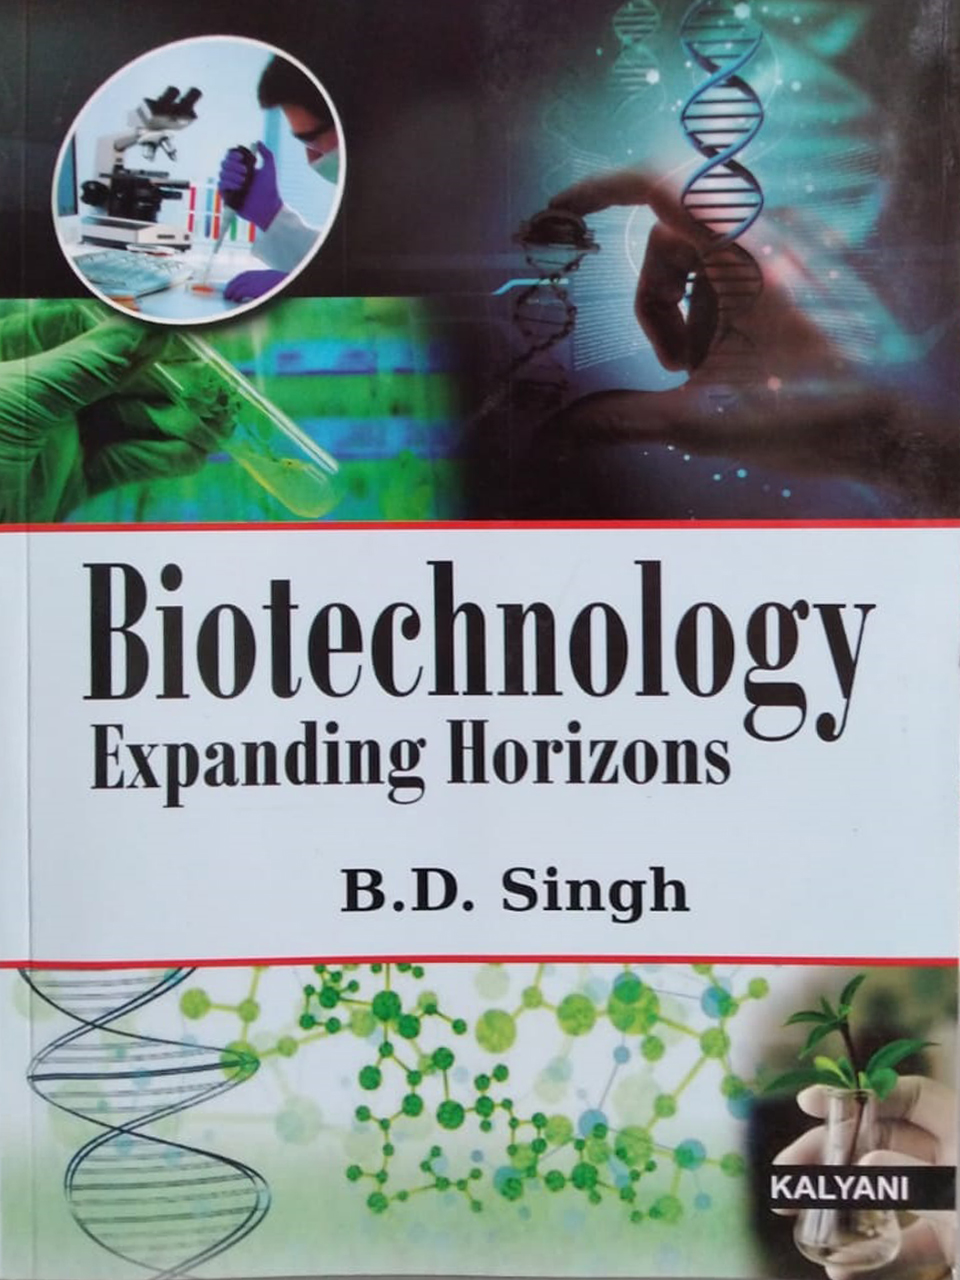 Biotechnology Expanding Horizons by B.D. Singh Edition, 2020